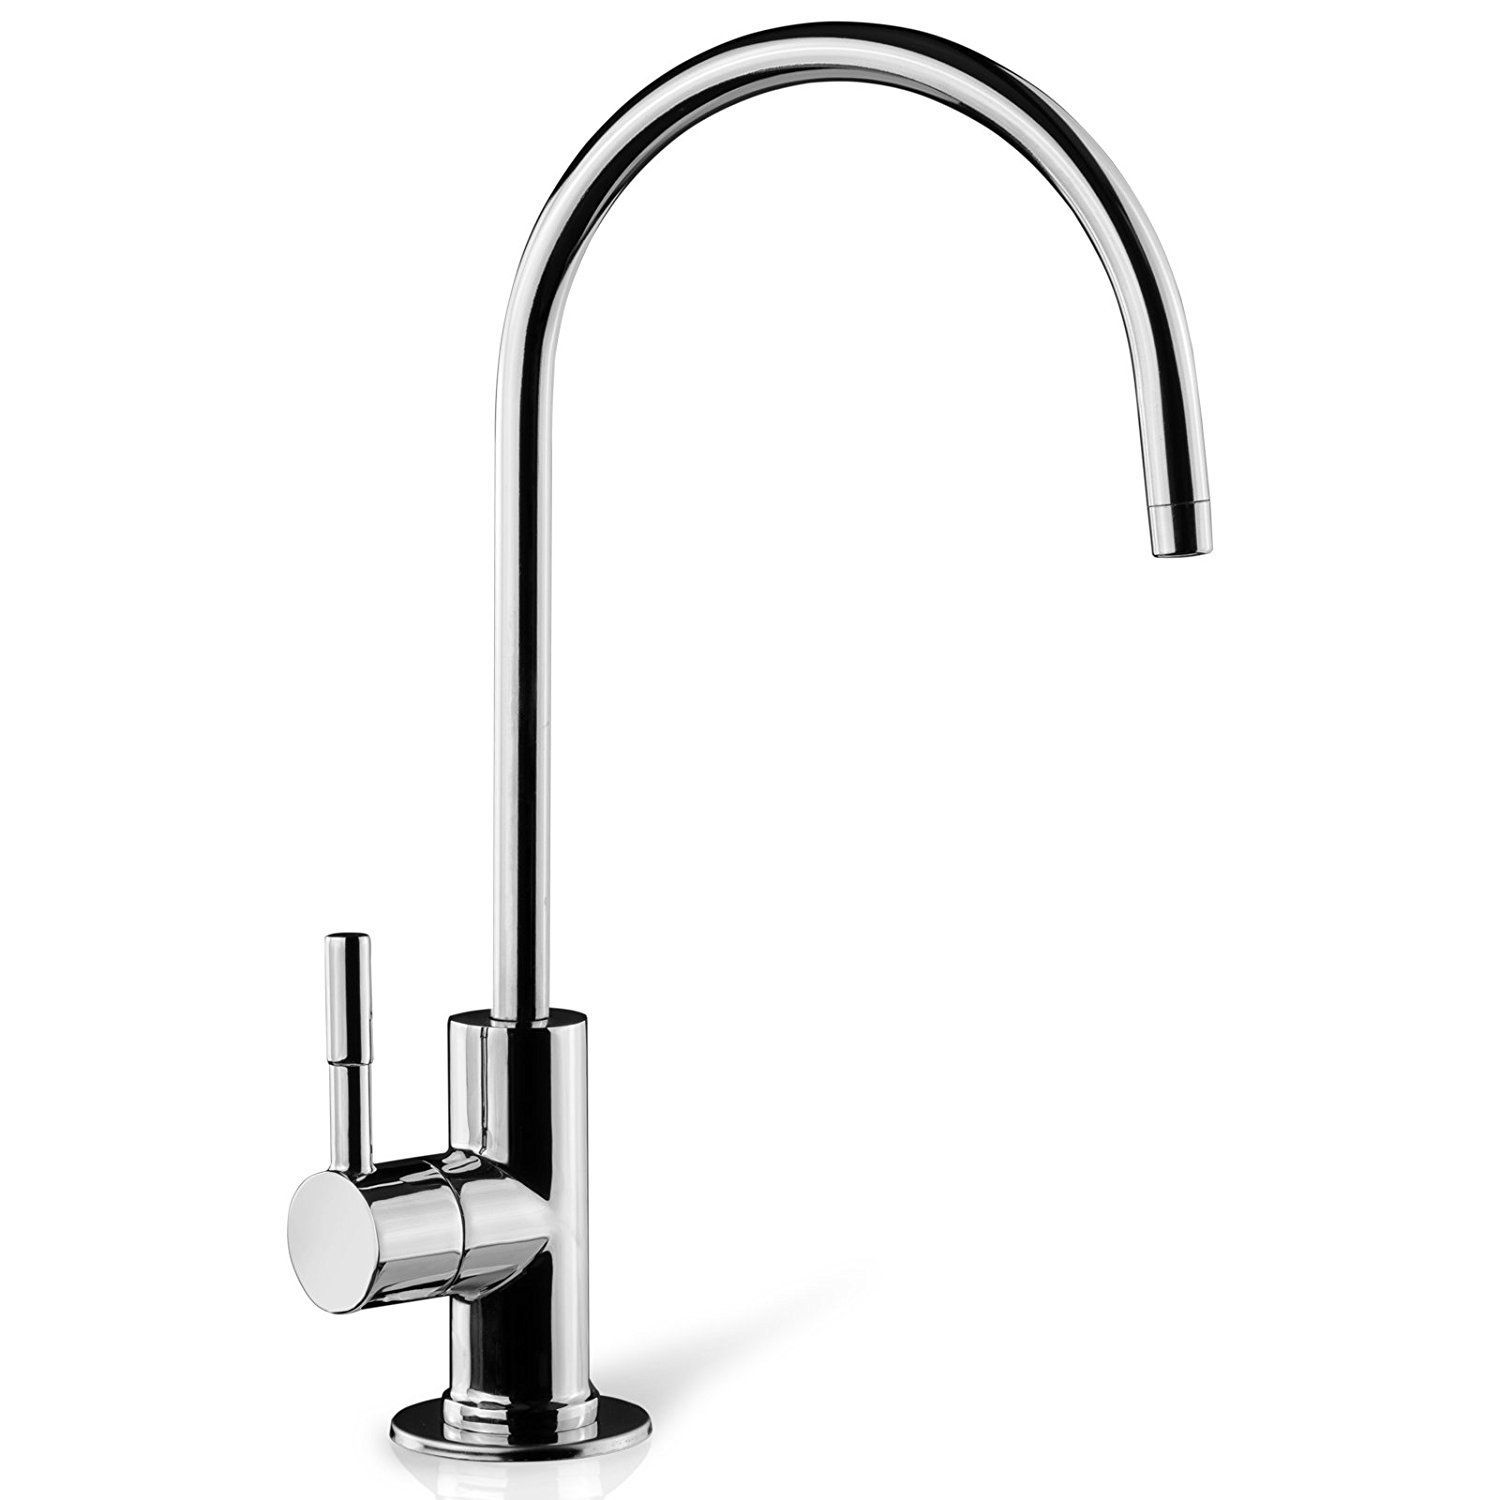 new of filter faucet water great sink drinking kitchen